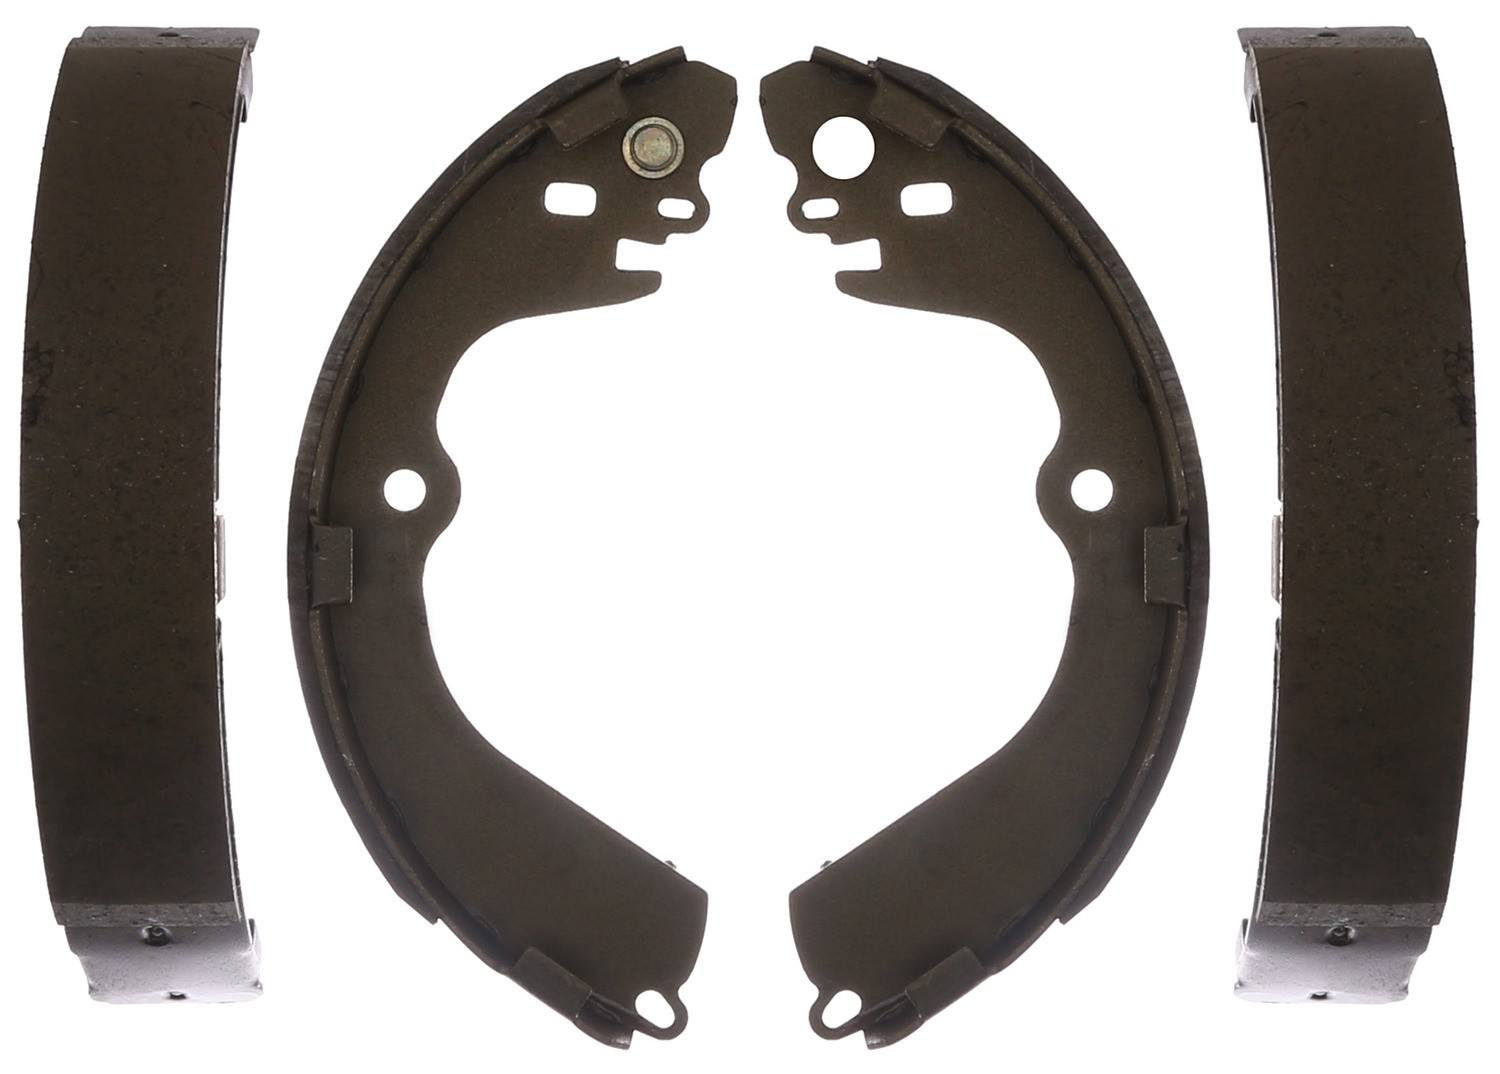 ACDELCO GOLD/PROFESSIONAL BRAKES - Bonded Drum Brake Shoe - ADU 171052B